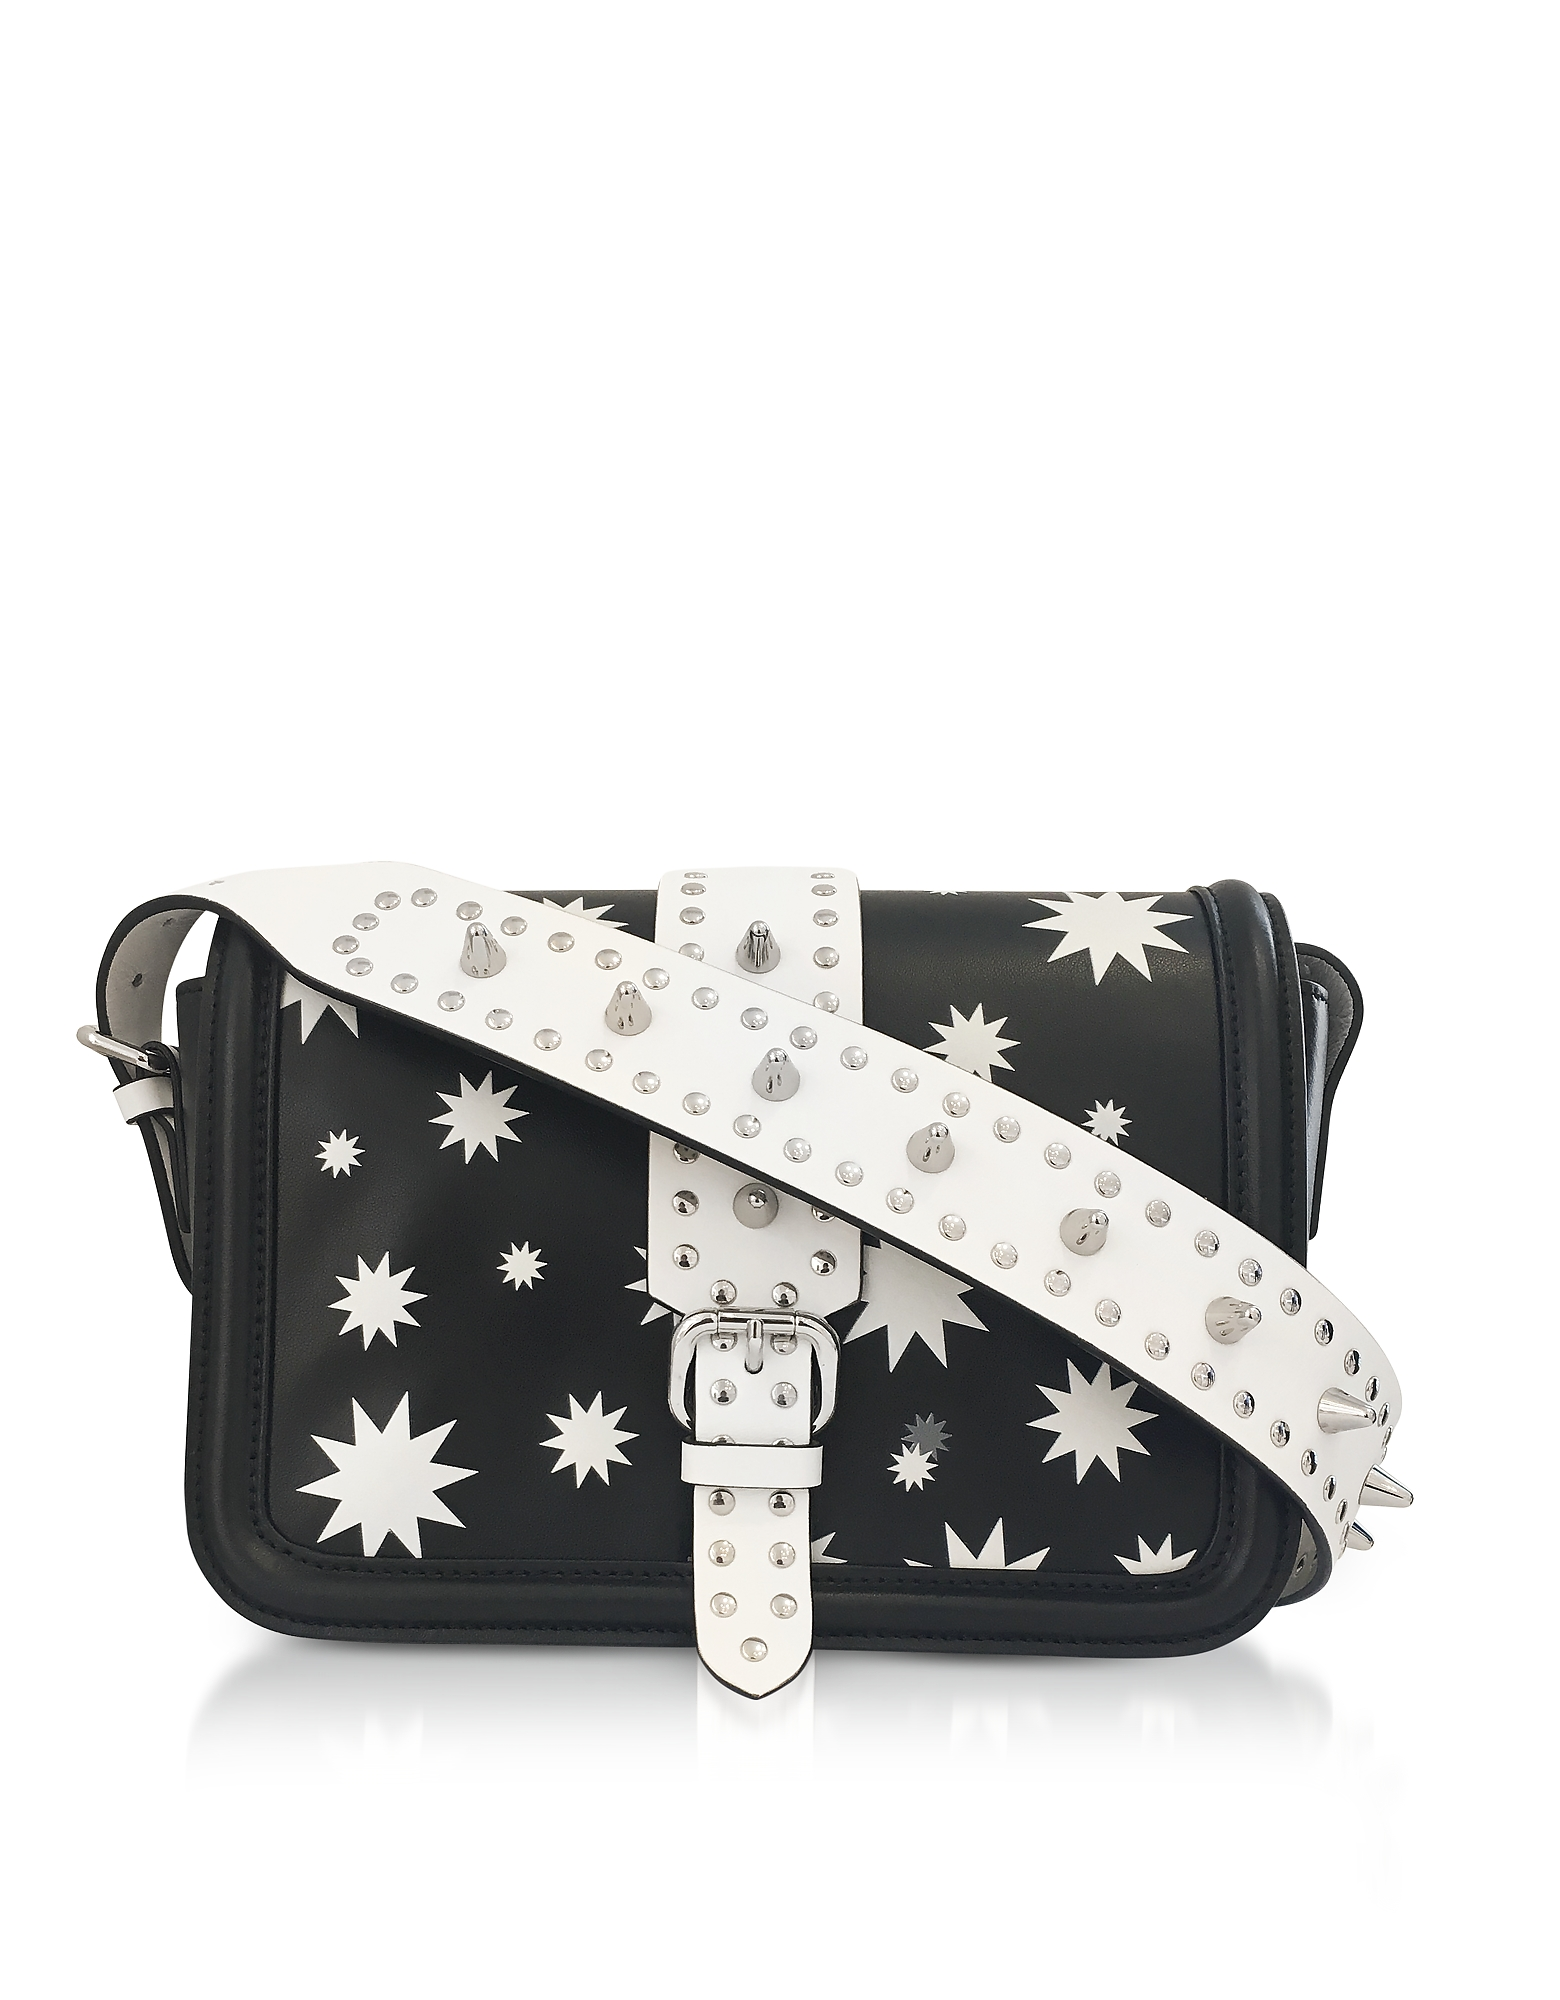 RED Valentino Handbags, Black and White Star Printed Crossbody Bag